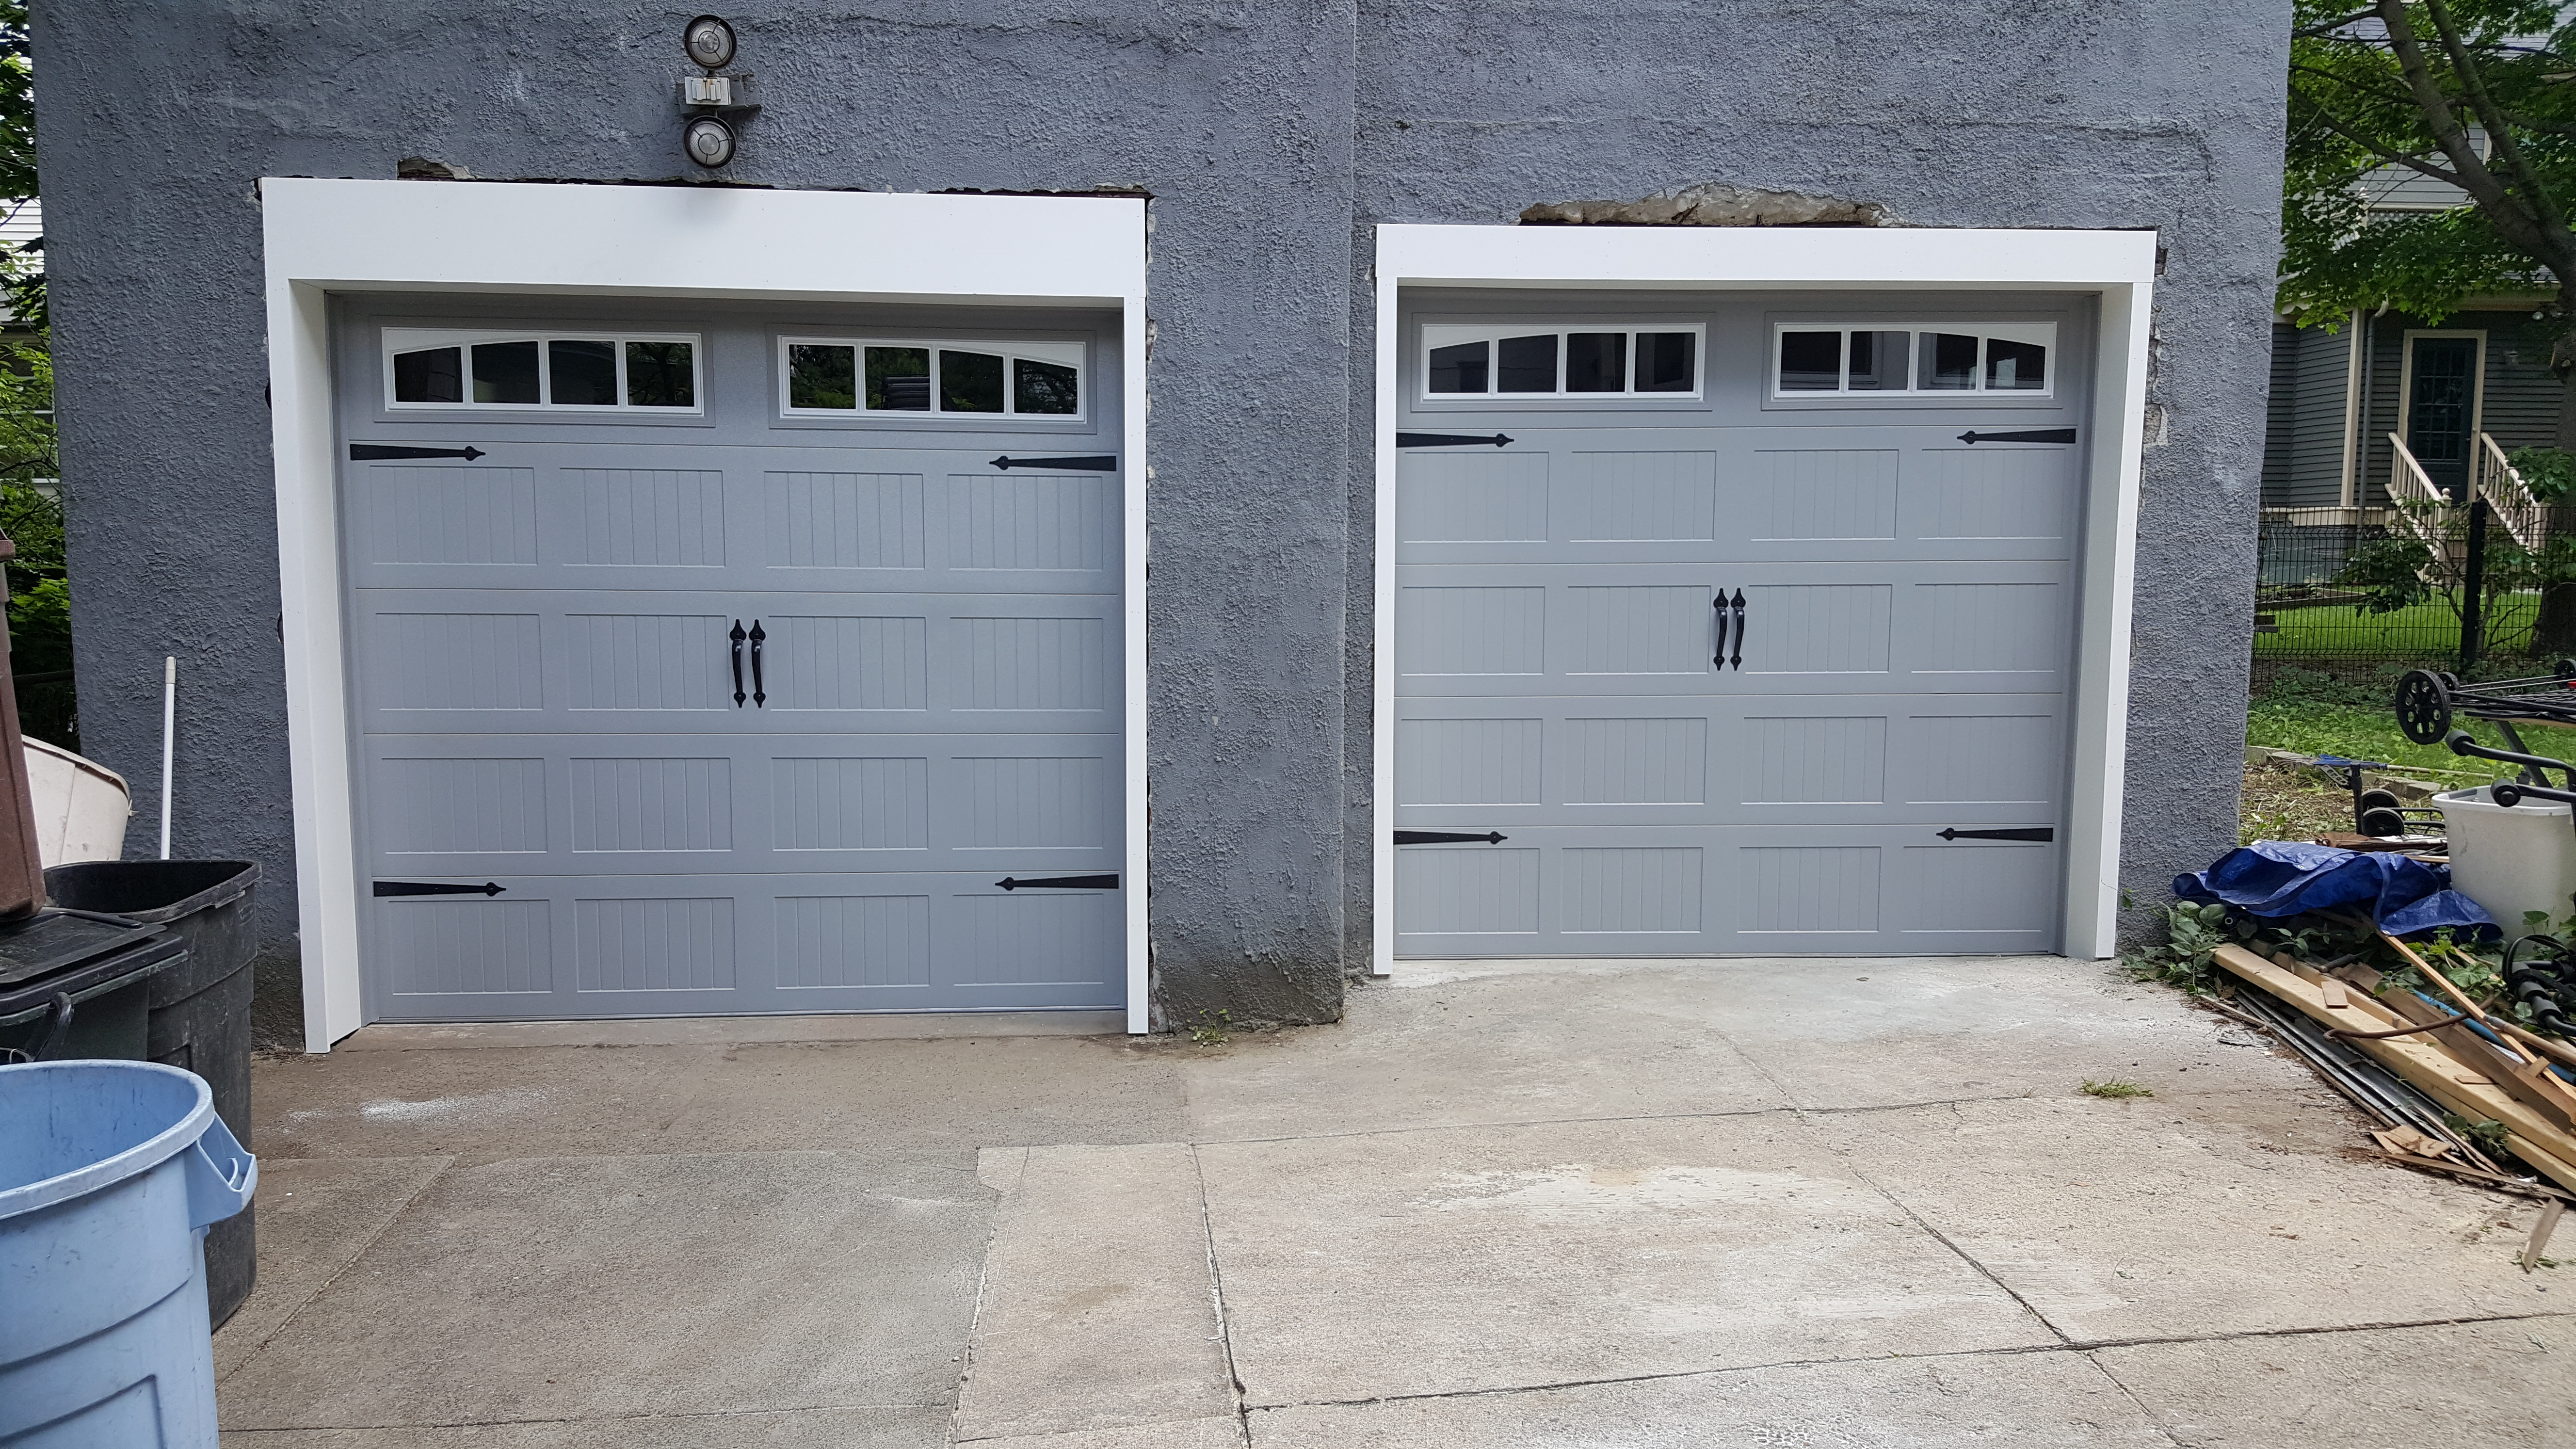 2988 #4B6030 Residential Garage Openers Leblanc Overhead Doors wallpaper Garage Doors In My Area 37455312